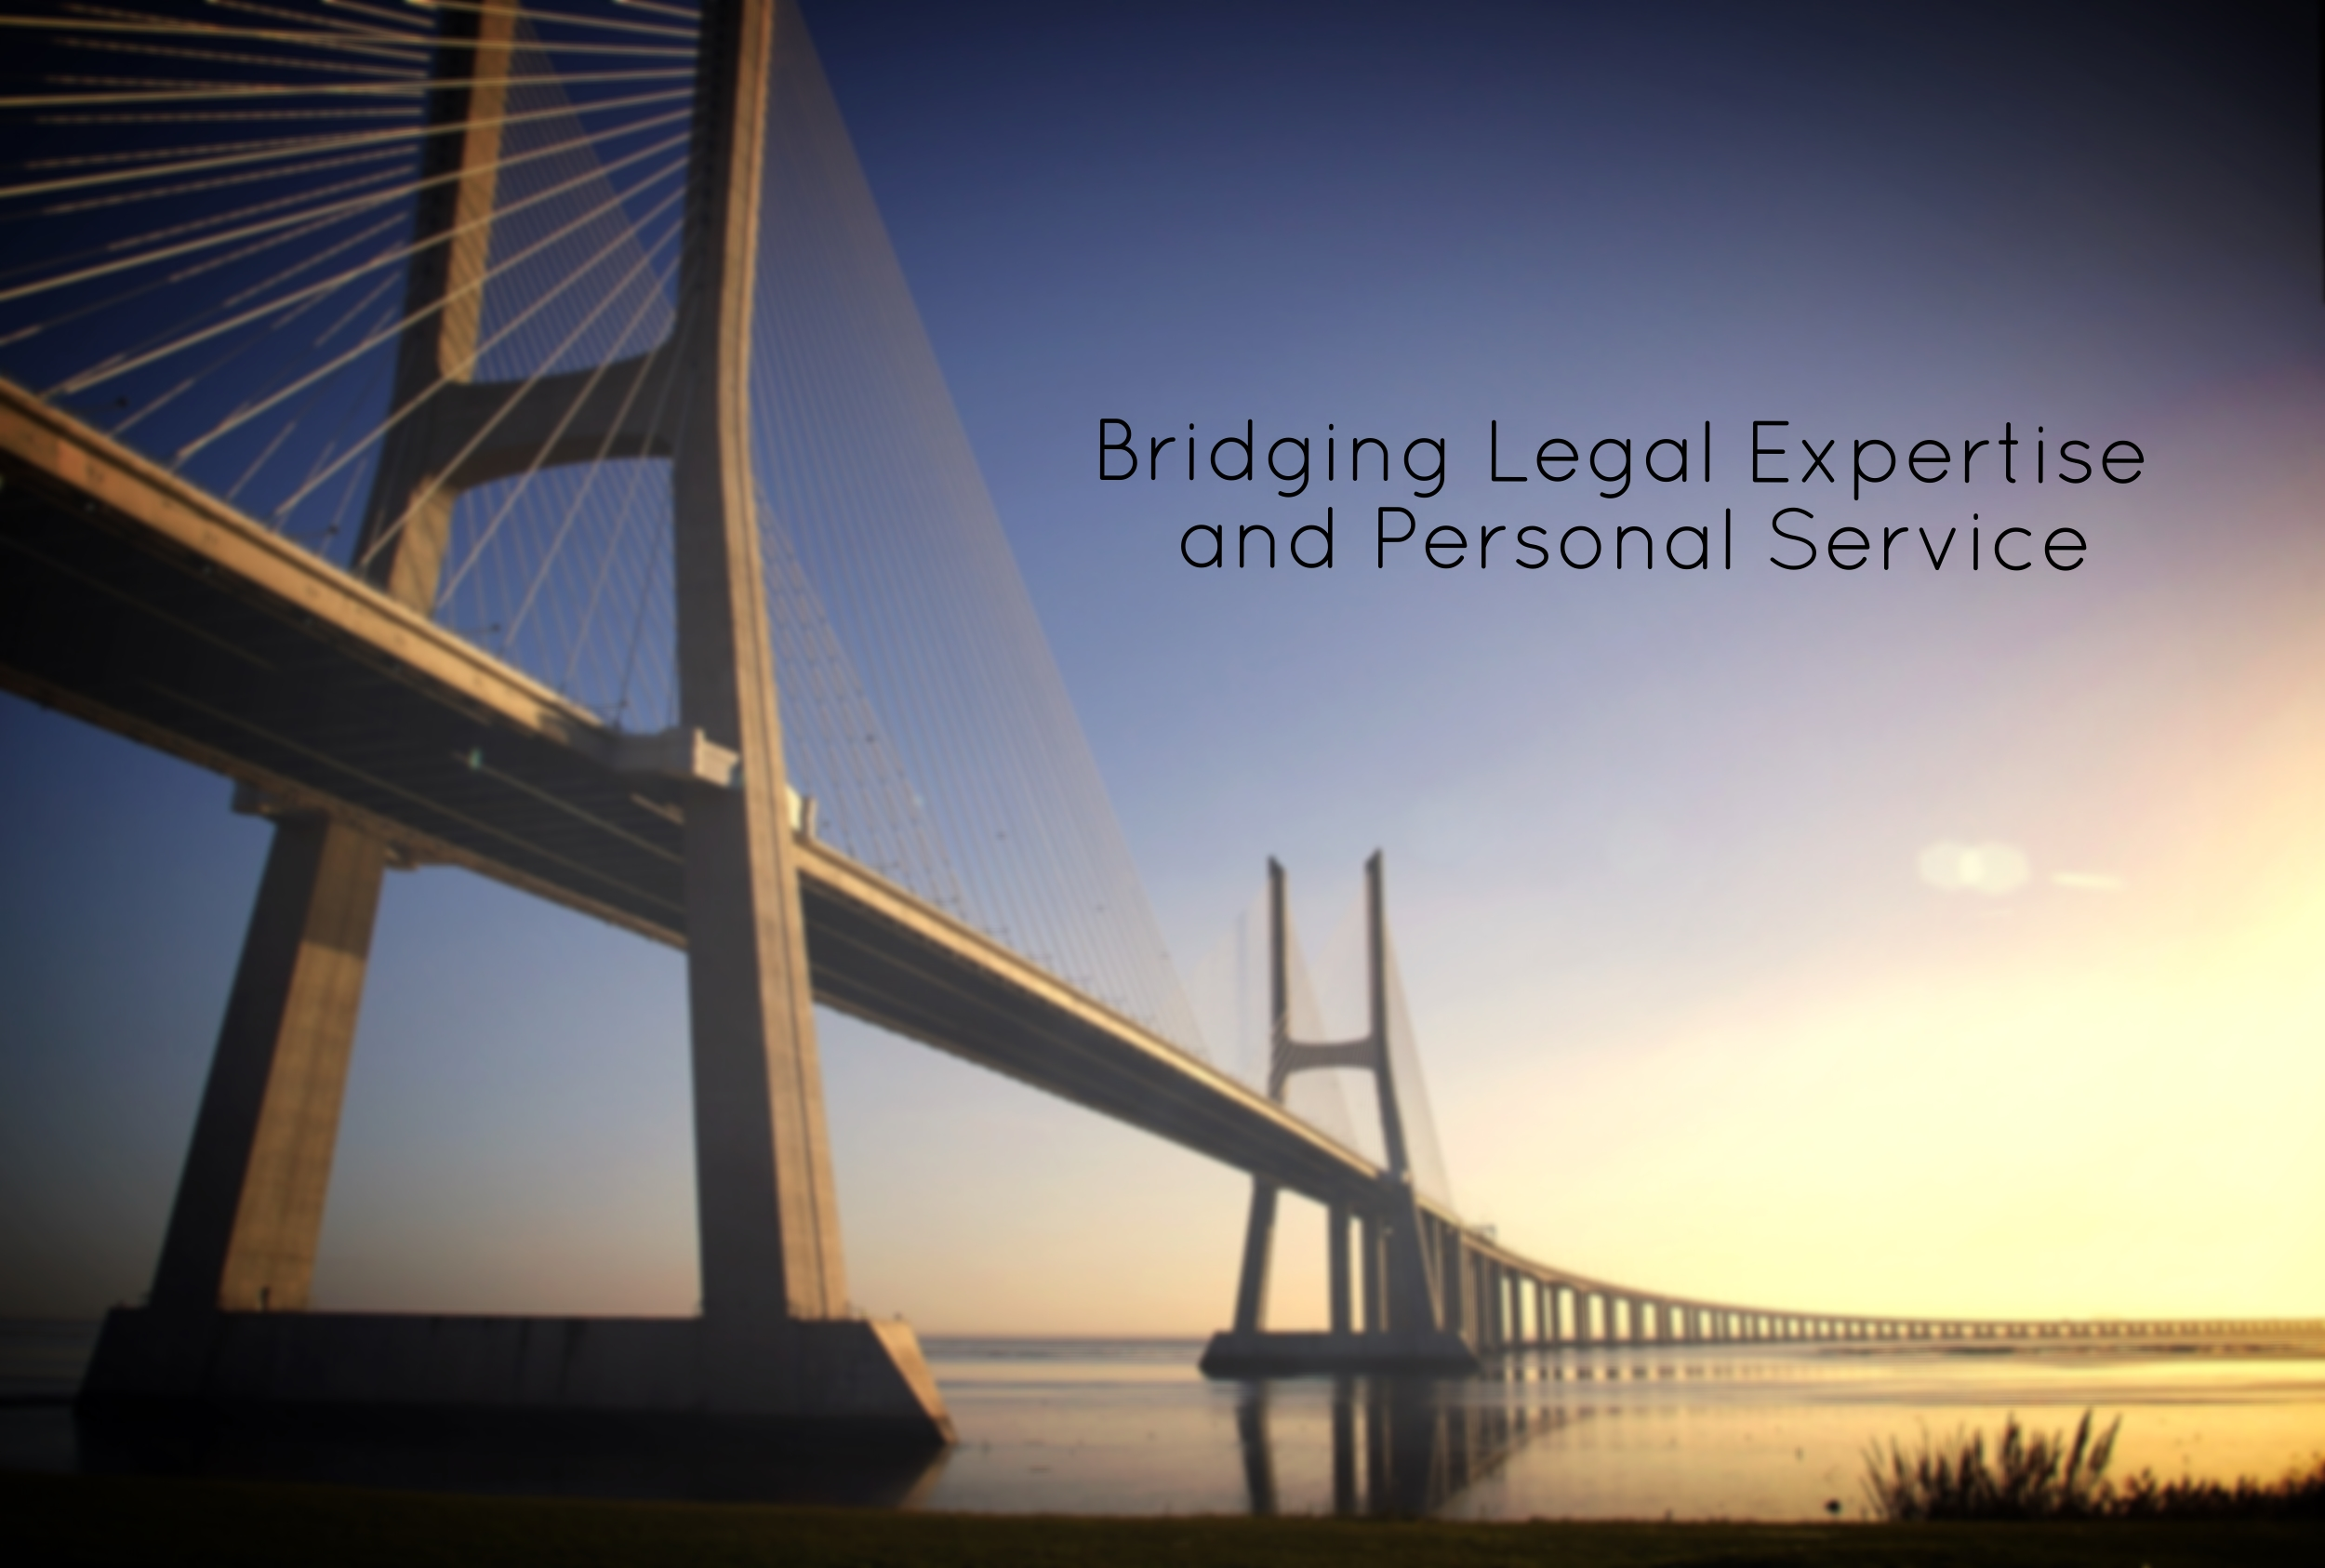 Bridging Legal Expertise and Personal Service